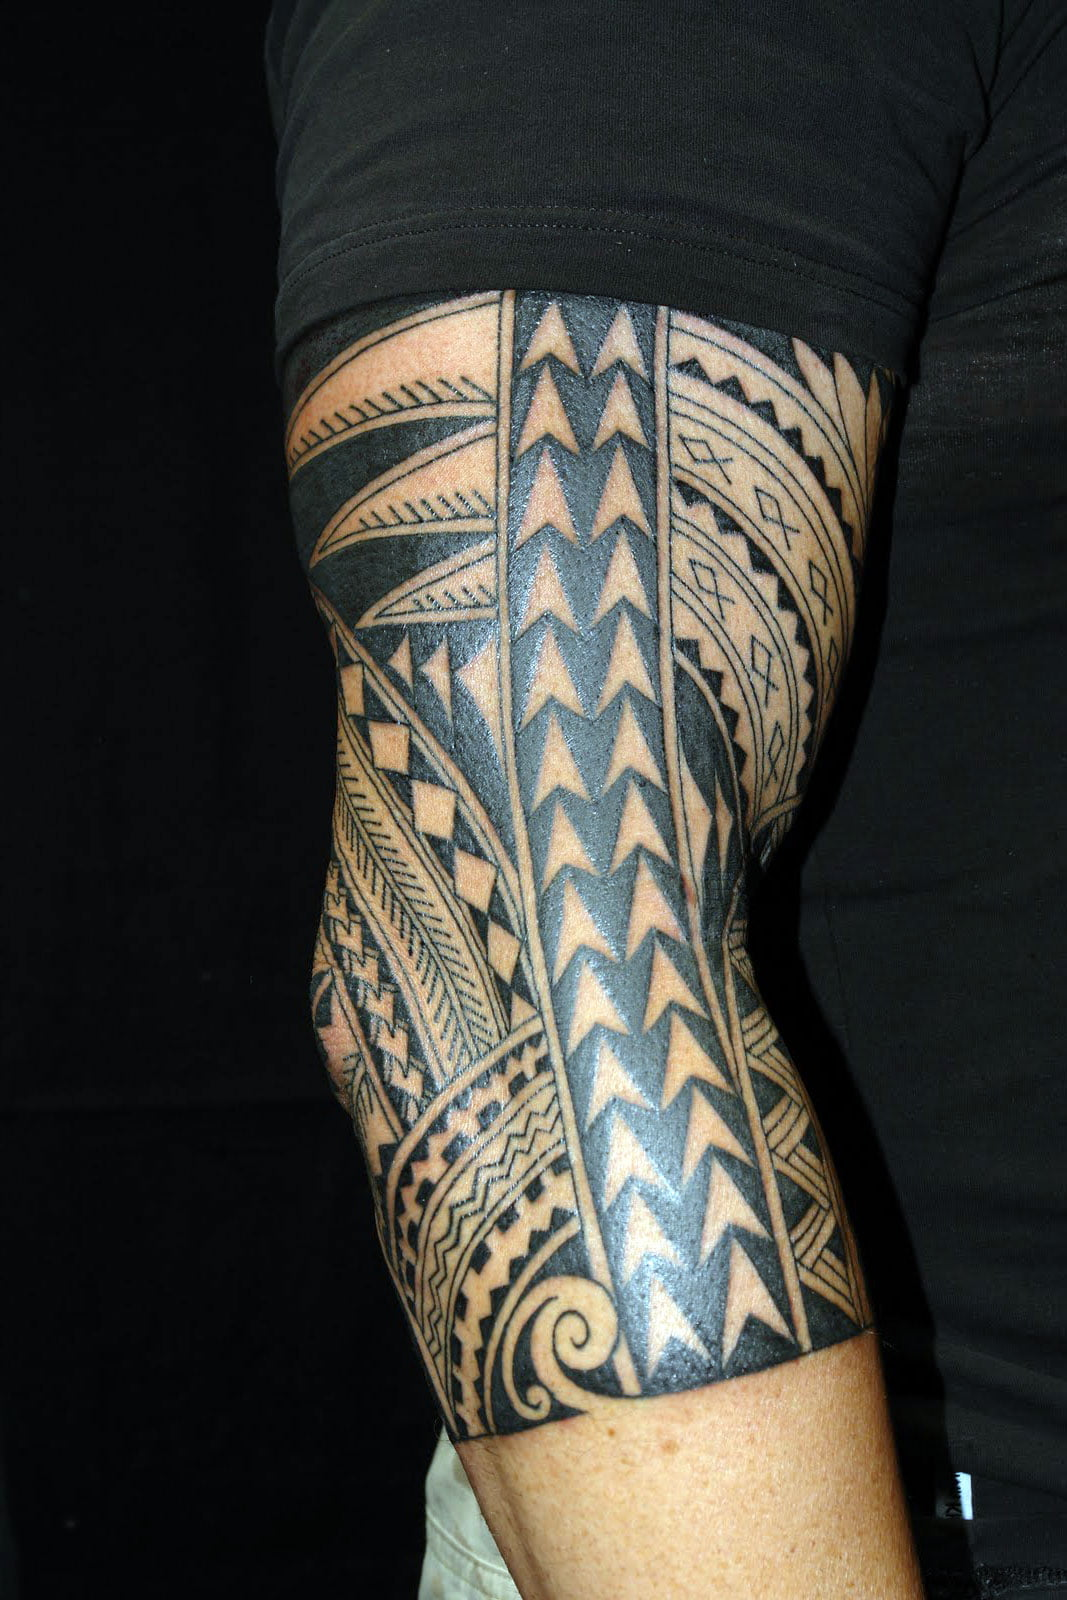 full sleeve polynesian tattoo designs cool tattoos bonbaden. Black Bedroom Furniture Sets. Home Design Ideas